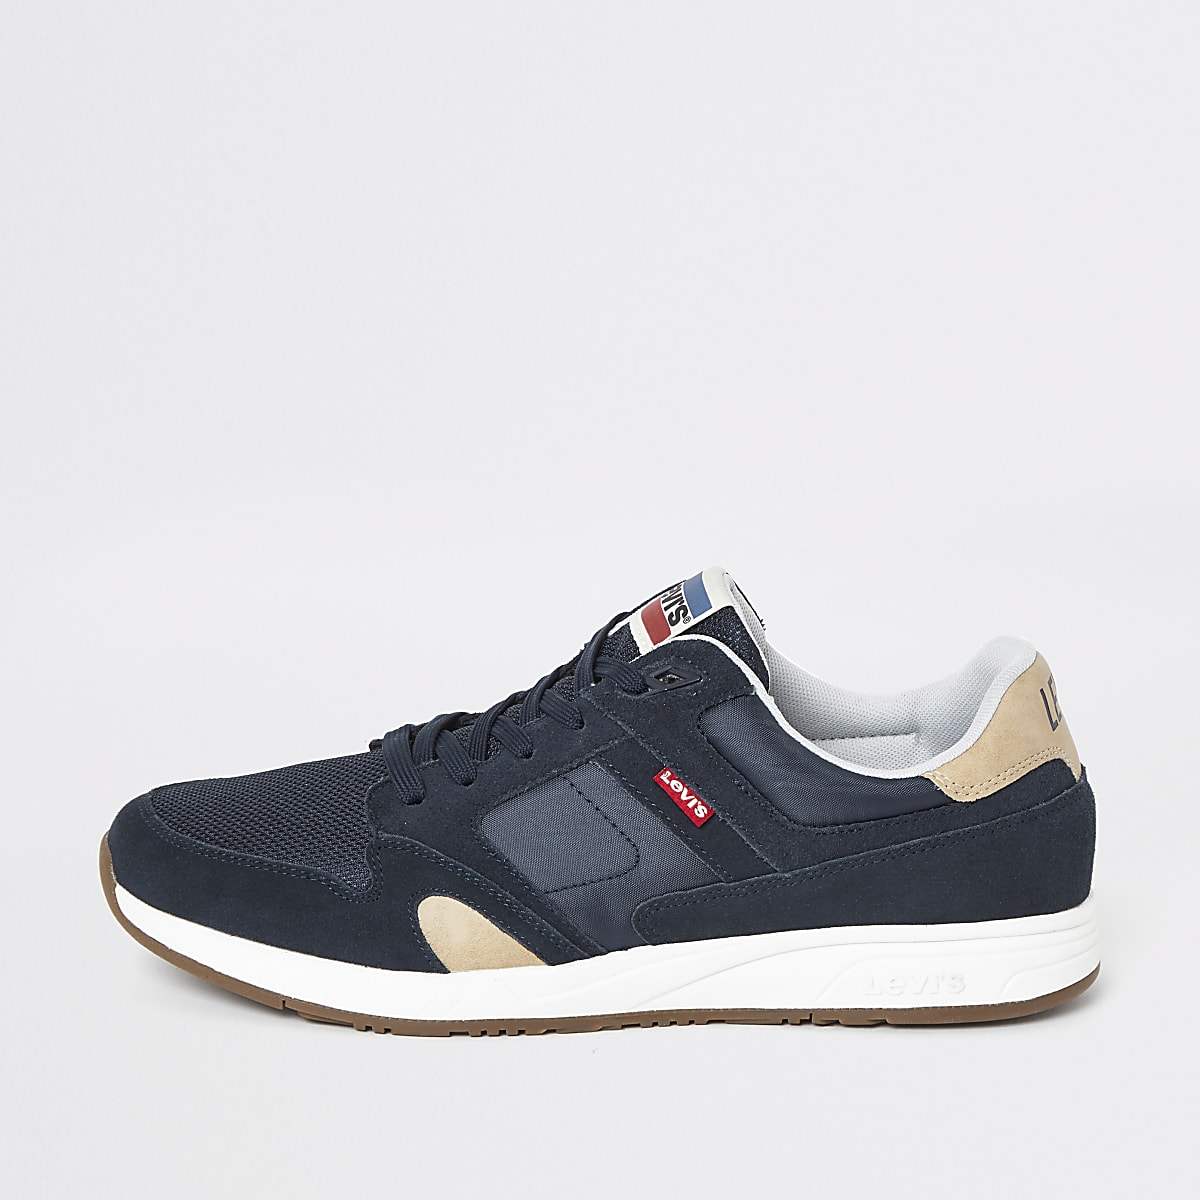 Levi's – Sutton – Marineblaue Sneakers